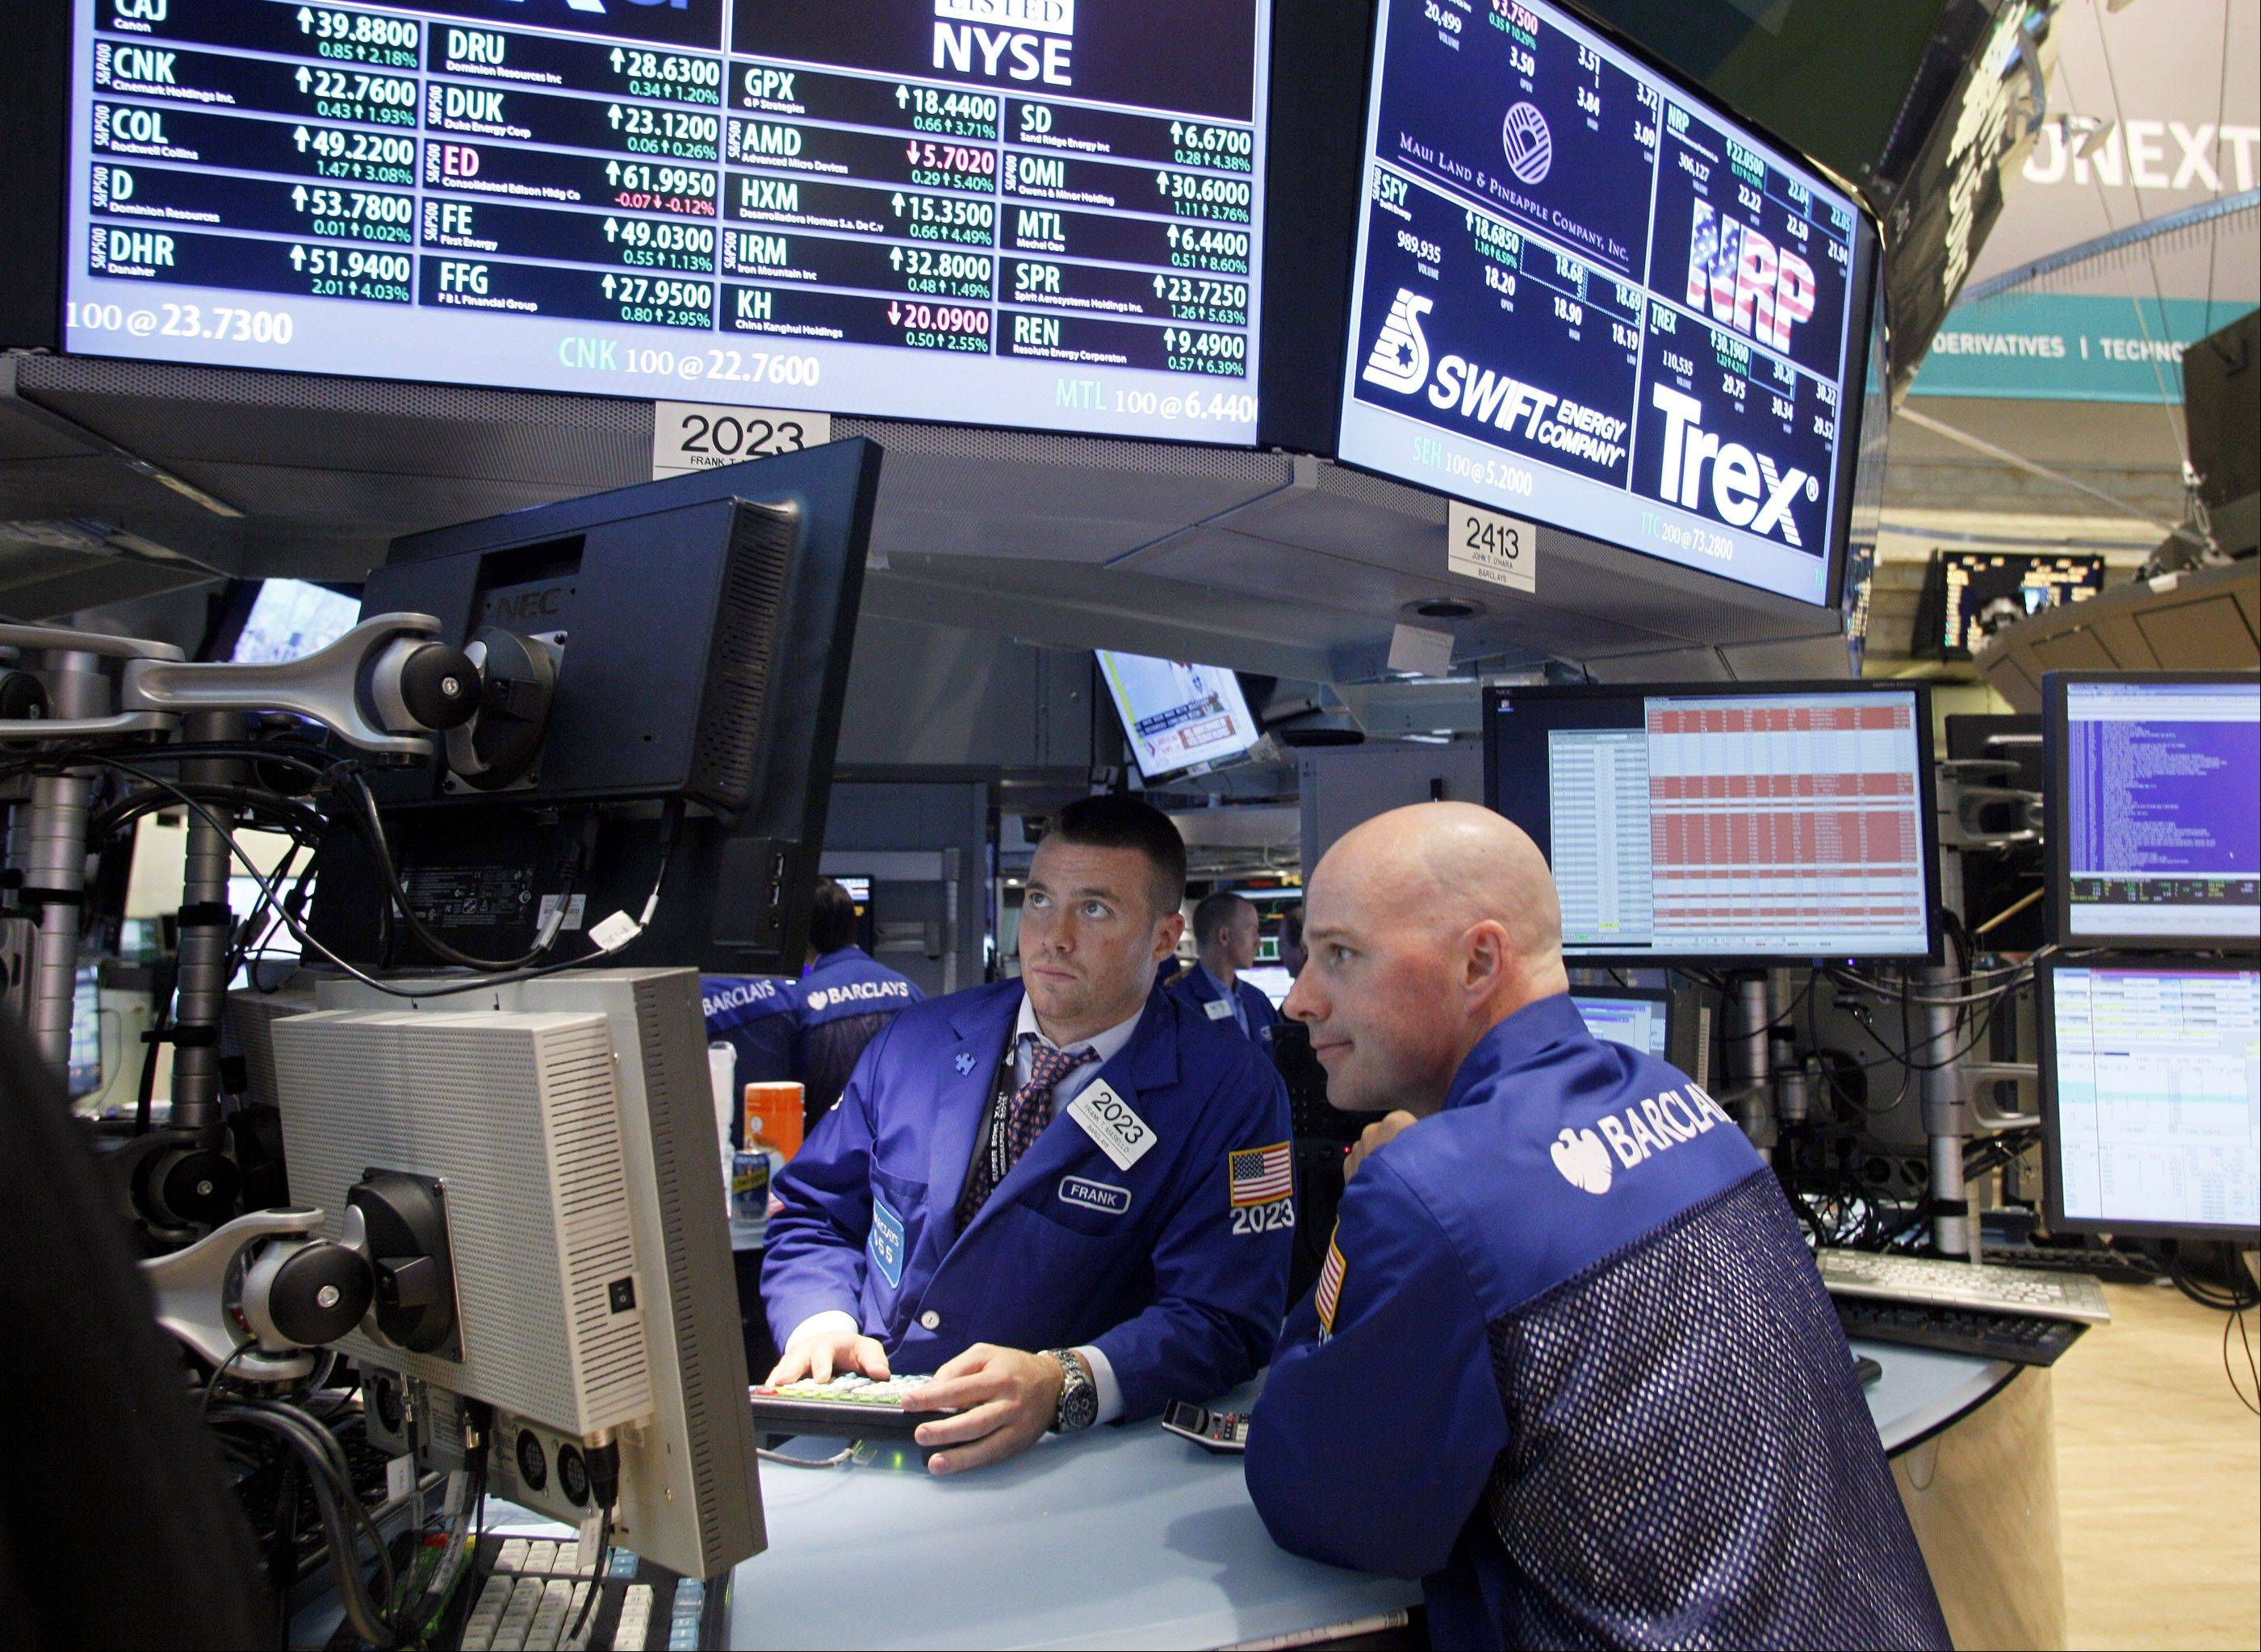 U.S. stocks on Monday showed some optimism about recently announced measures in Europe to stave off a debt crisis and hopes that interest rates there will be cut this week. Yet gains are being tempered with more evidence of a broader slowdown in China.